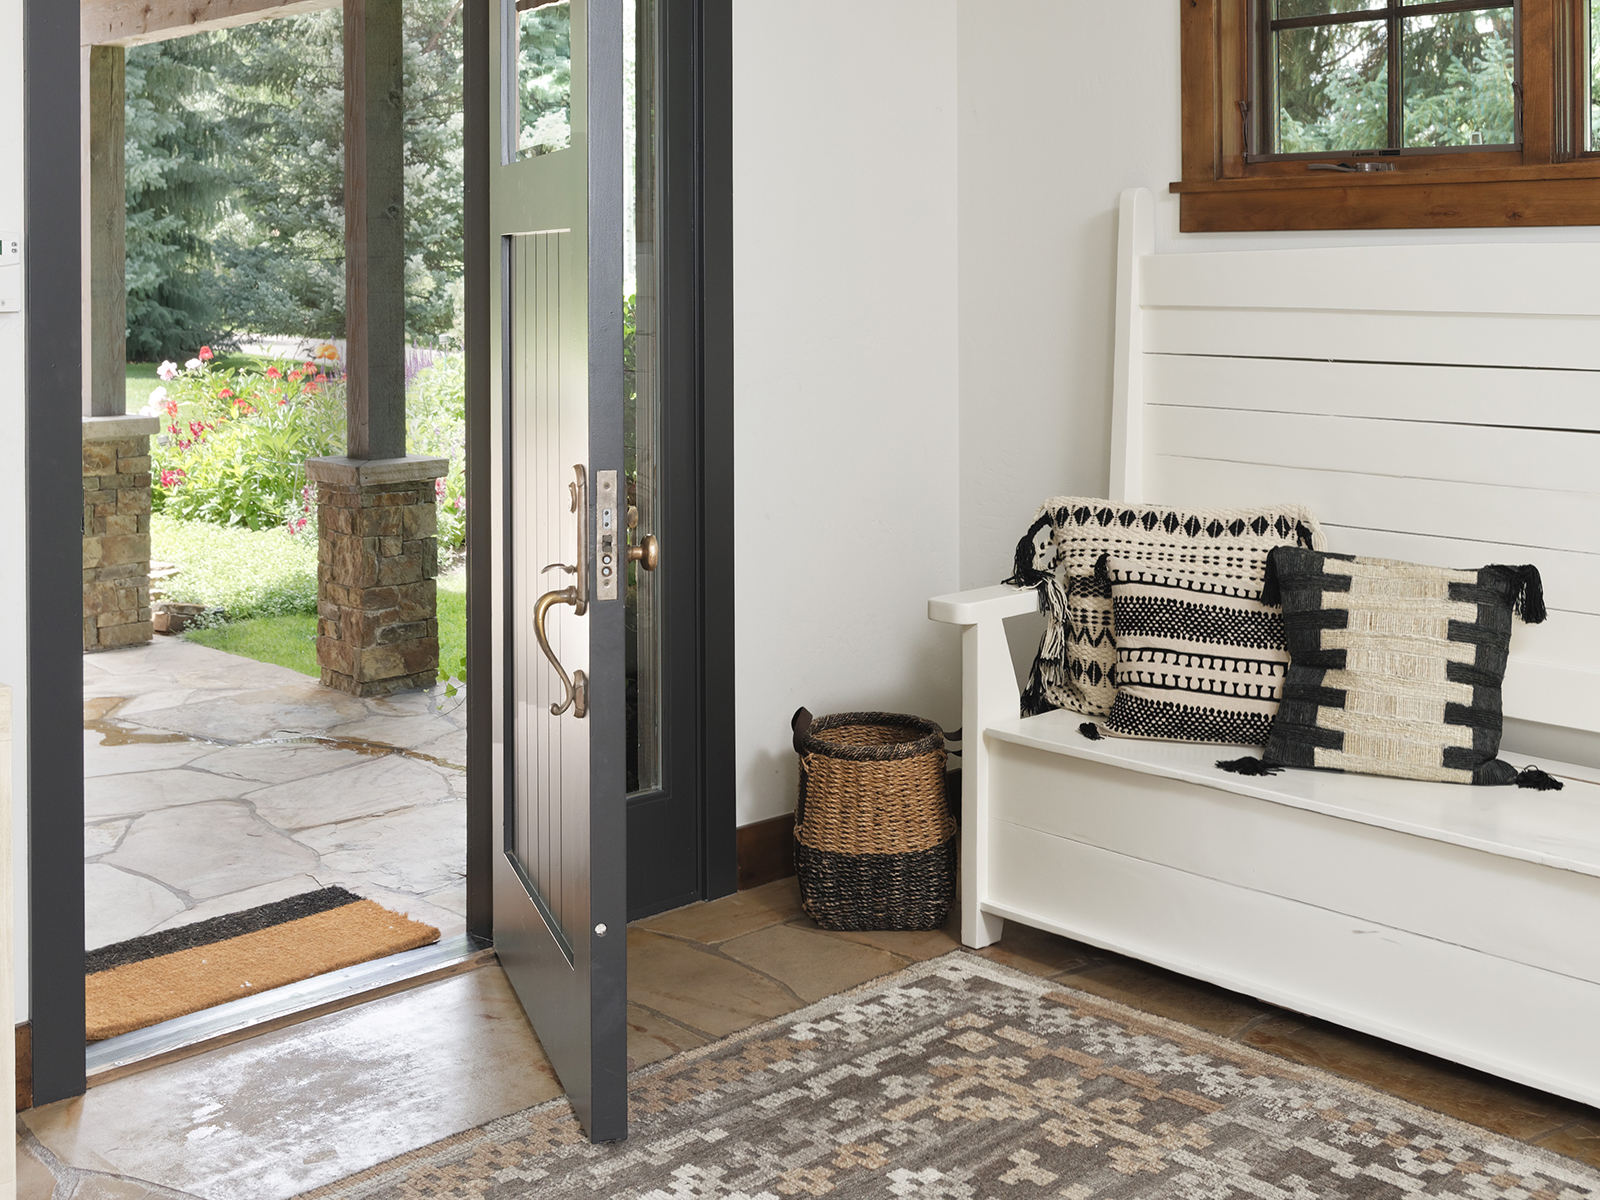 An entrance hall with wooden furniture and an earth-toned rug